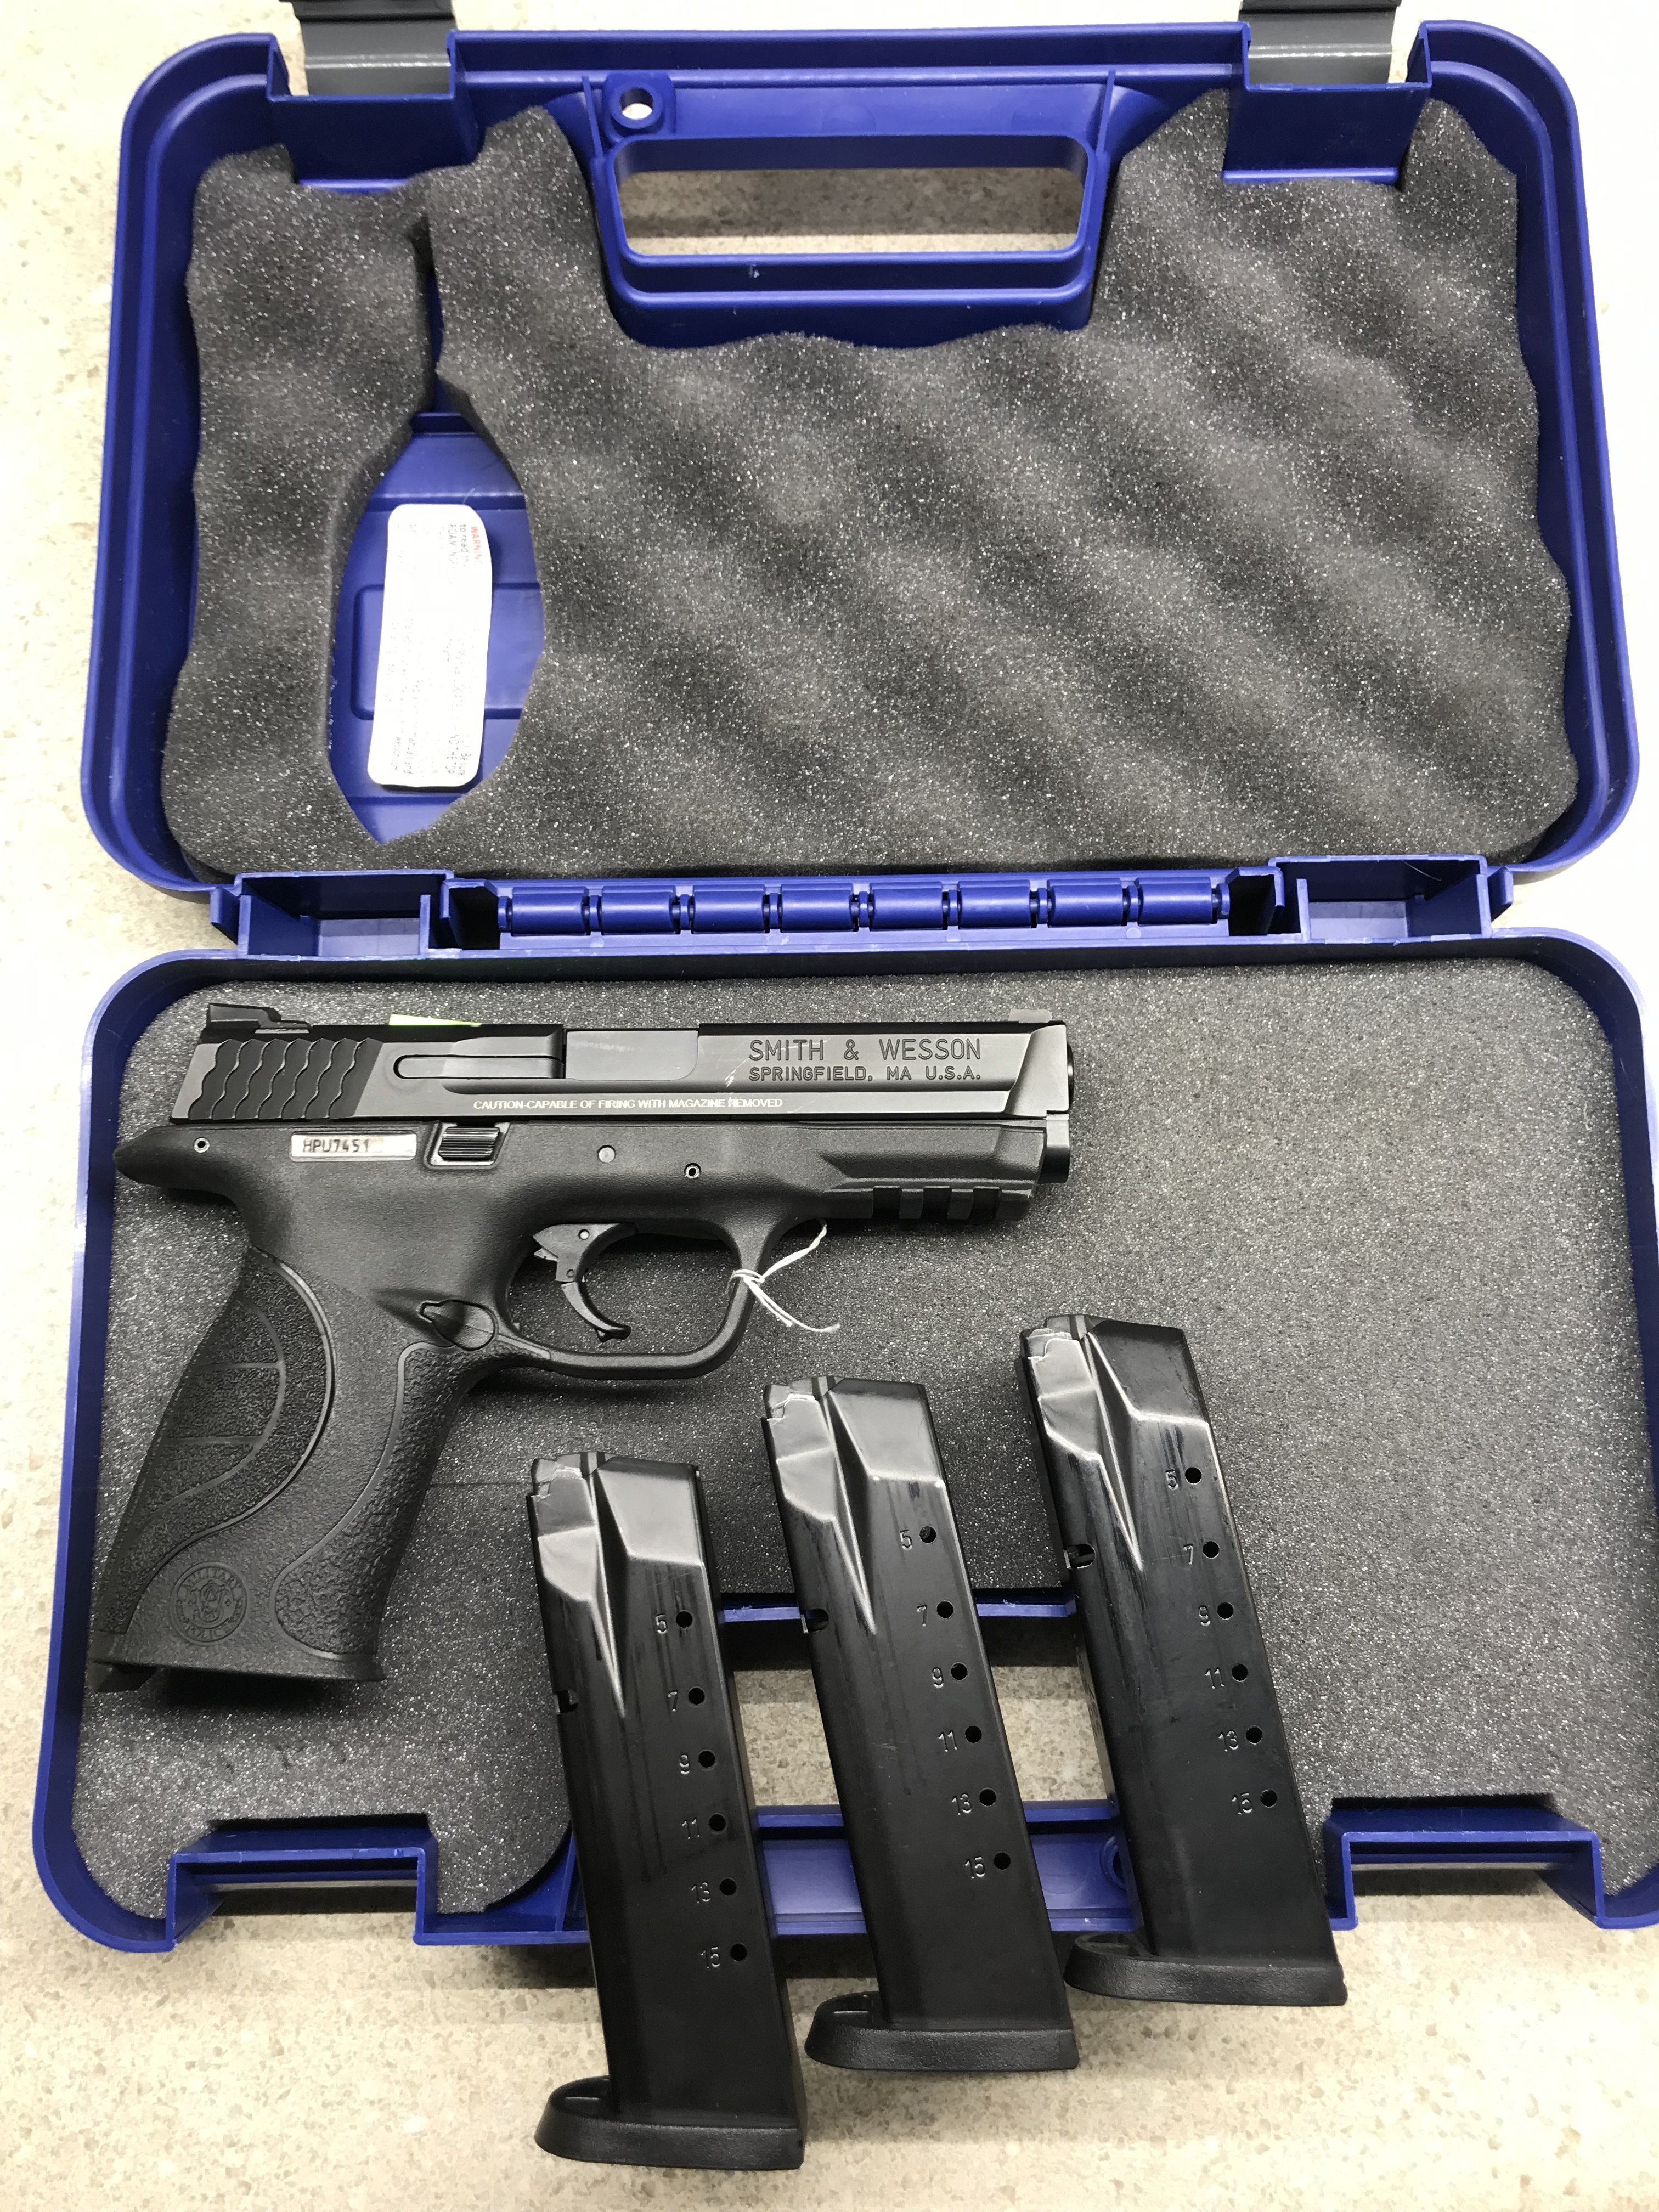 SMITH & WESSON - M&P40 PRO SERIES - 40 PISTOL